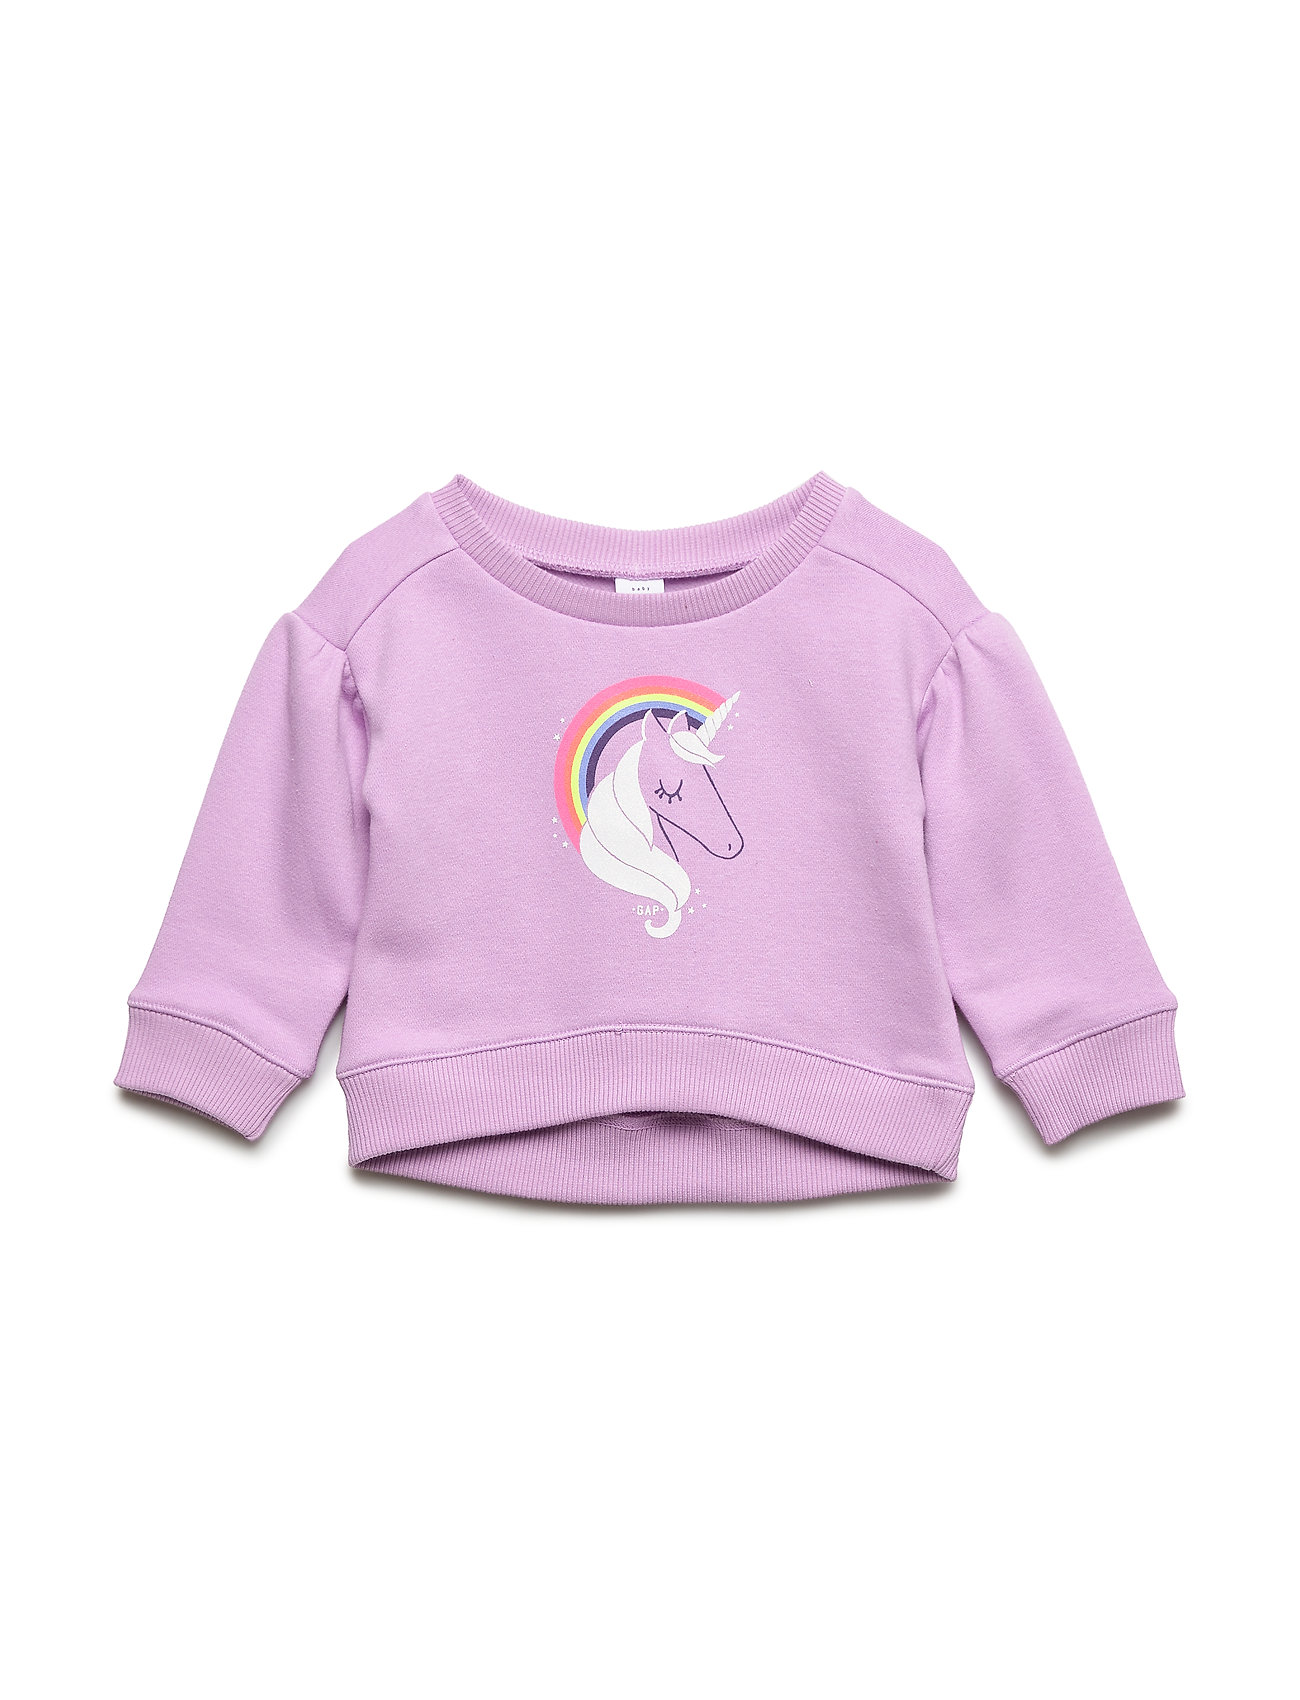 GAP Toddler Graphic Pullover Sweatshirt - PURPLE ORCHID